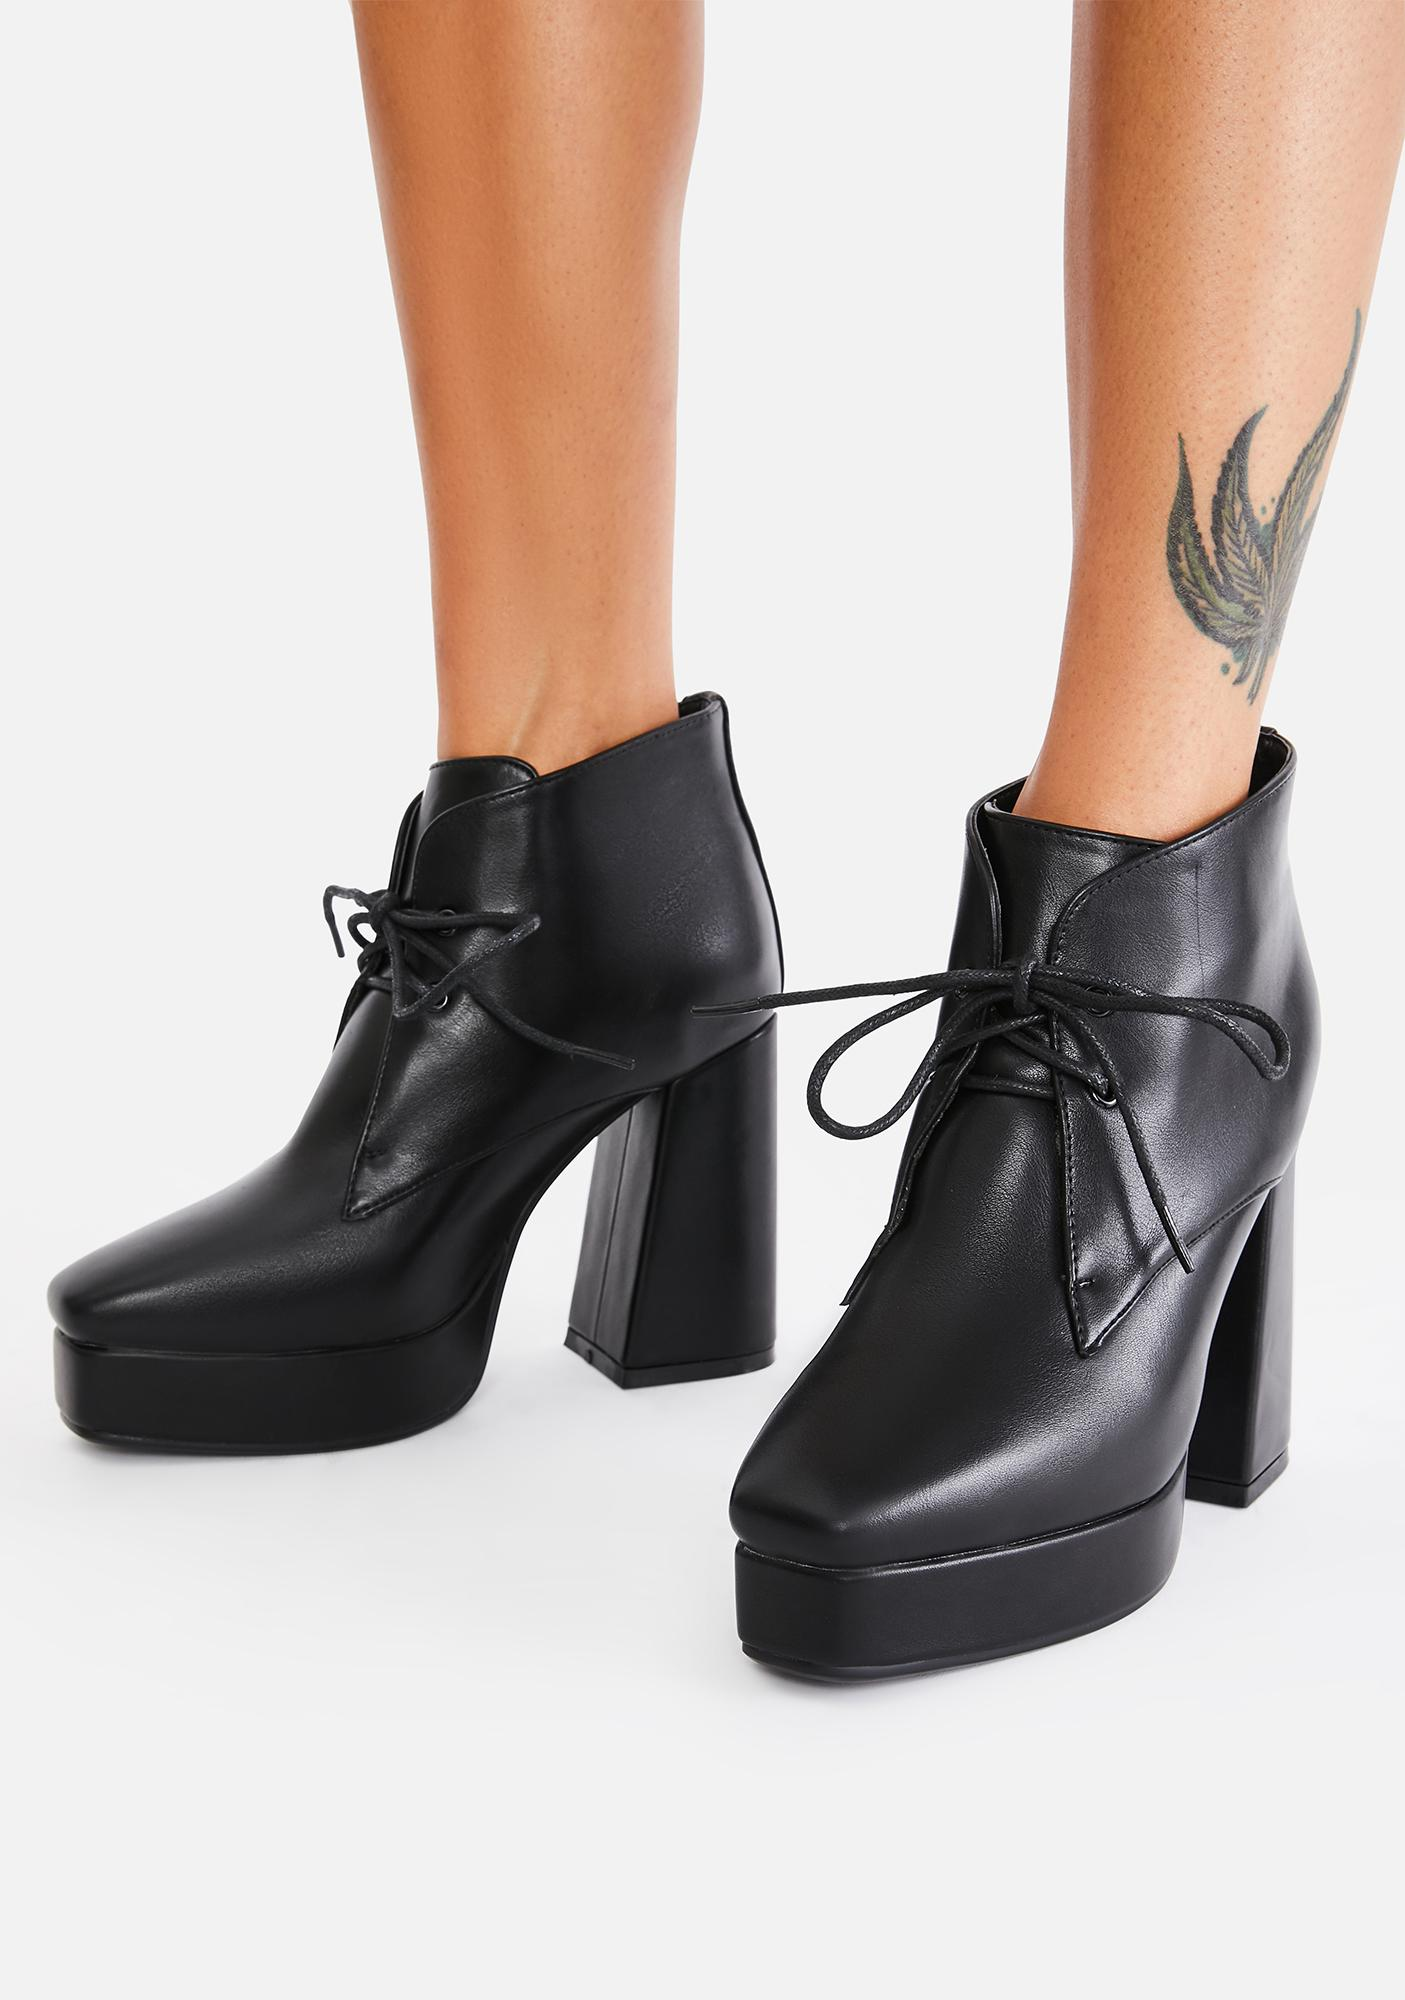 Lamoda Most Likely To Succeed Ankle Boots